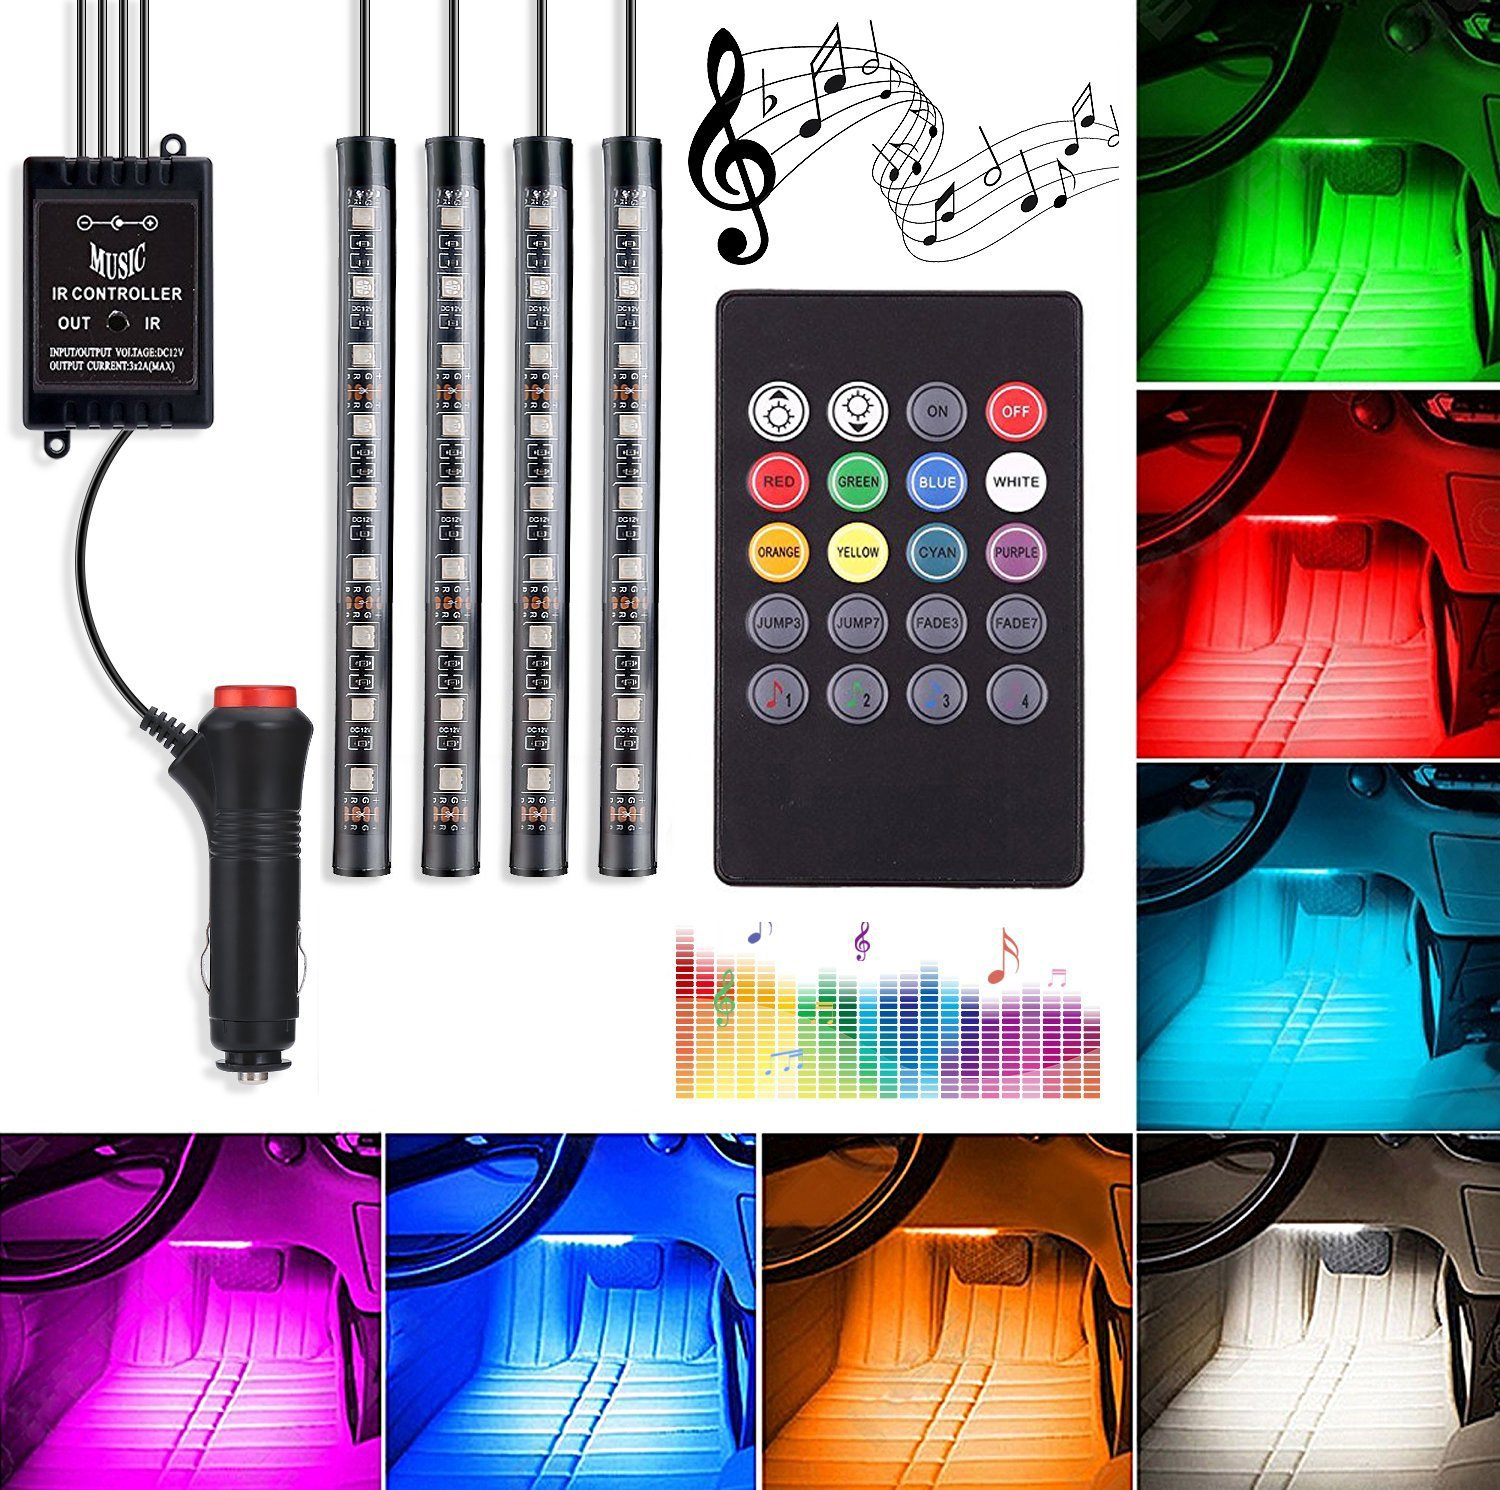 Automotive LED Decor Strip Lights, 4pcs 48 LED Lights DV 12V Car Colorful Music RGB LED Interior Lighting, Car Decorative Lights, with Sound-Activated, APP Controller, Car Charger Included Wanmingtek AUTODELIGHTS